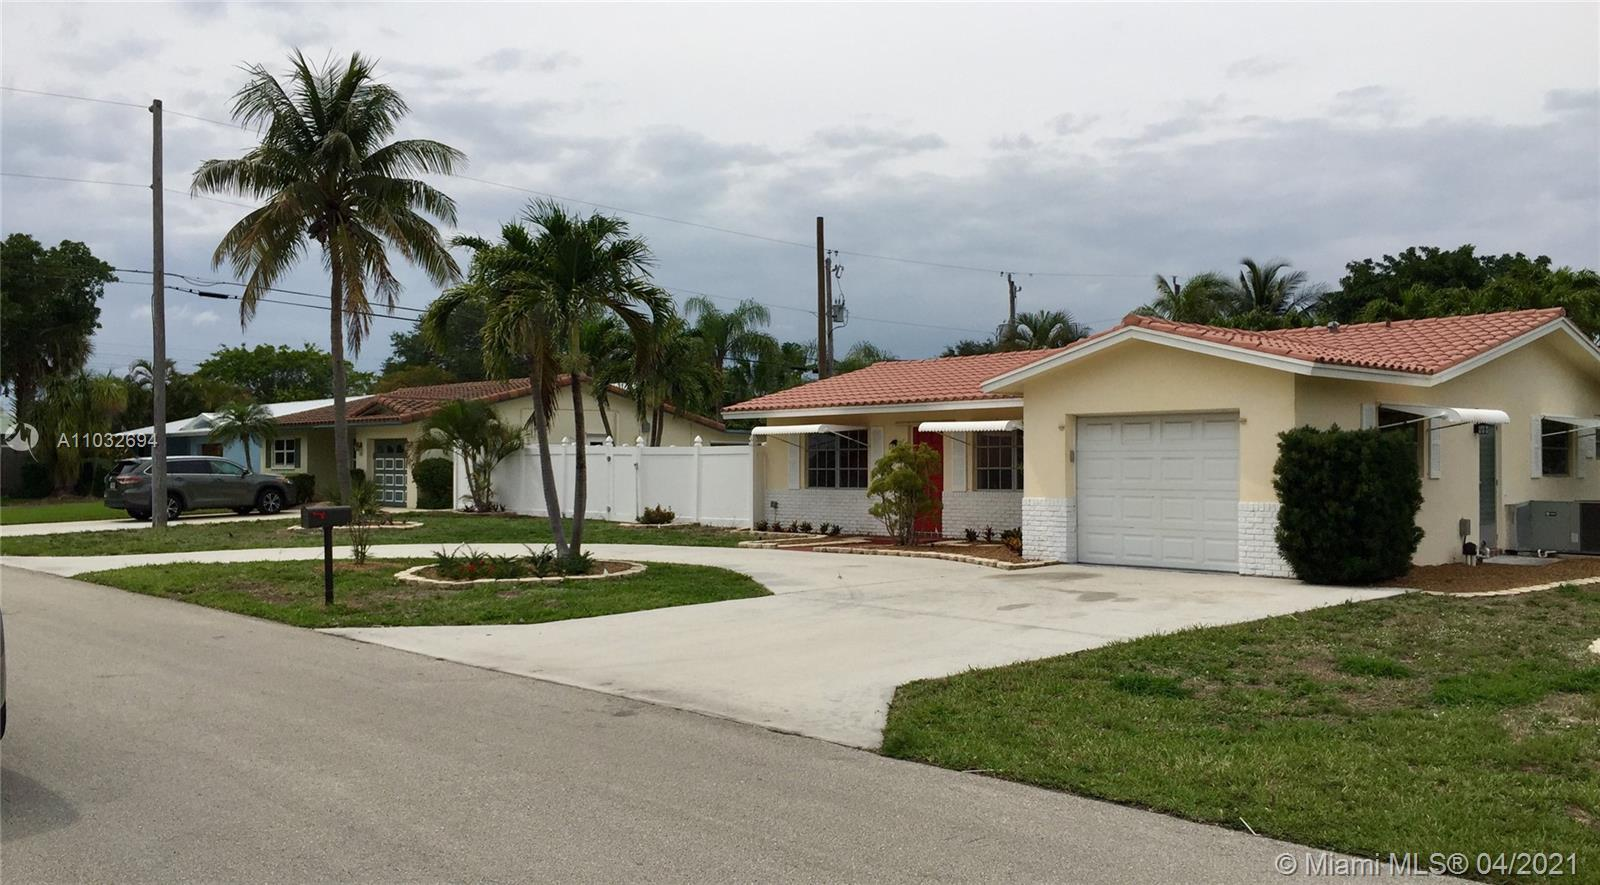 3BR/2BTH pool home in East Boca. less than a mile or minutes to the beach, the best schools, I-95 an